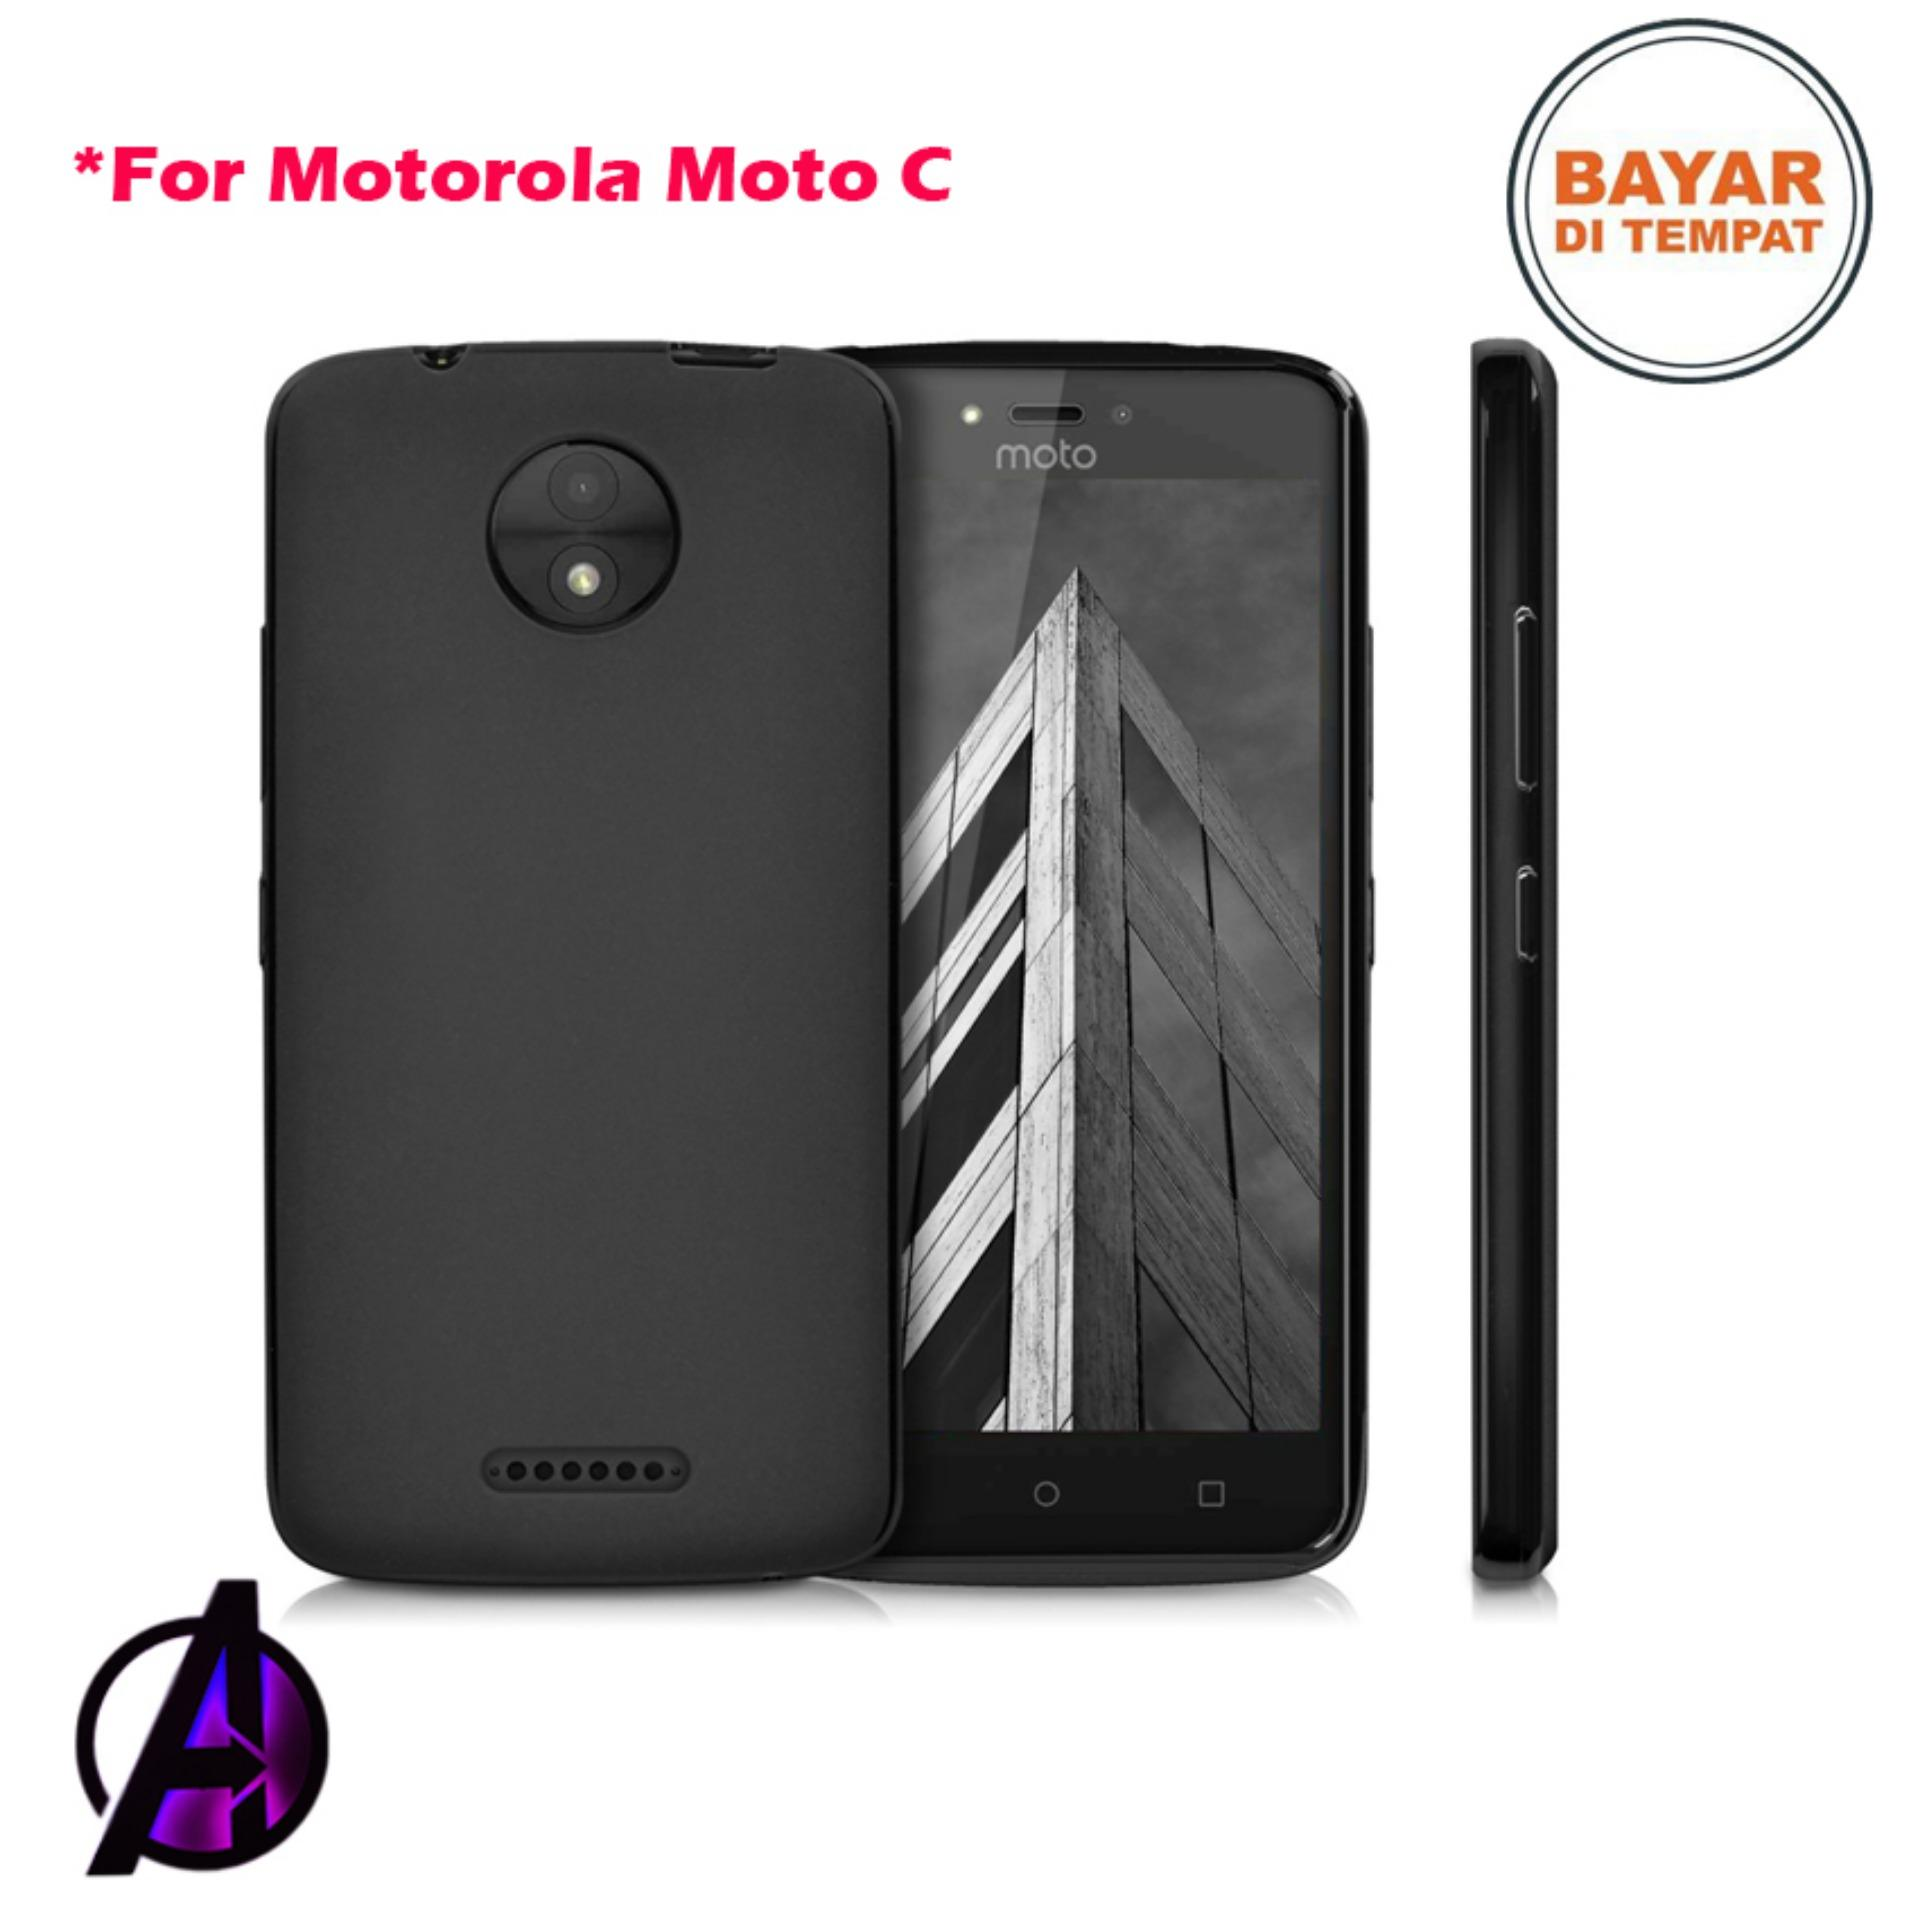 ... Smartfren Andromax Qi Black Clear Source · QCF Ultrathin Silicone Jelly Softcase. Source · Case Black Matte Soft Slim Motorola Moto C